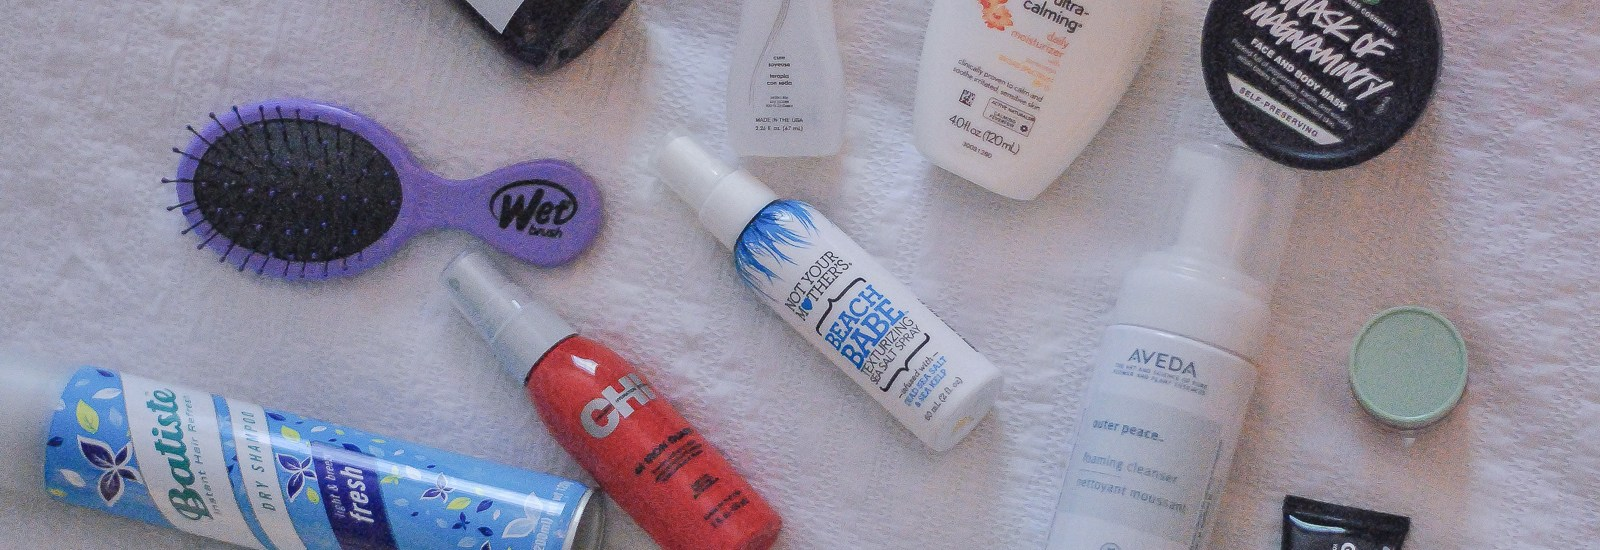 My Favorite Hair & Beauty Products